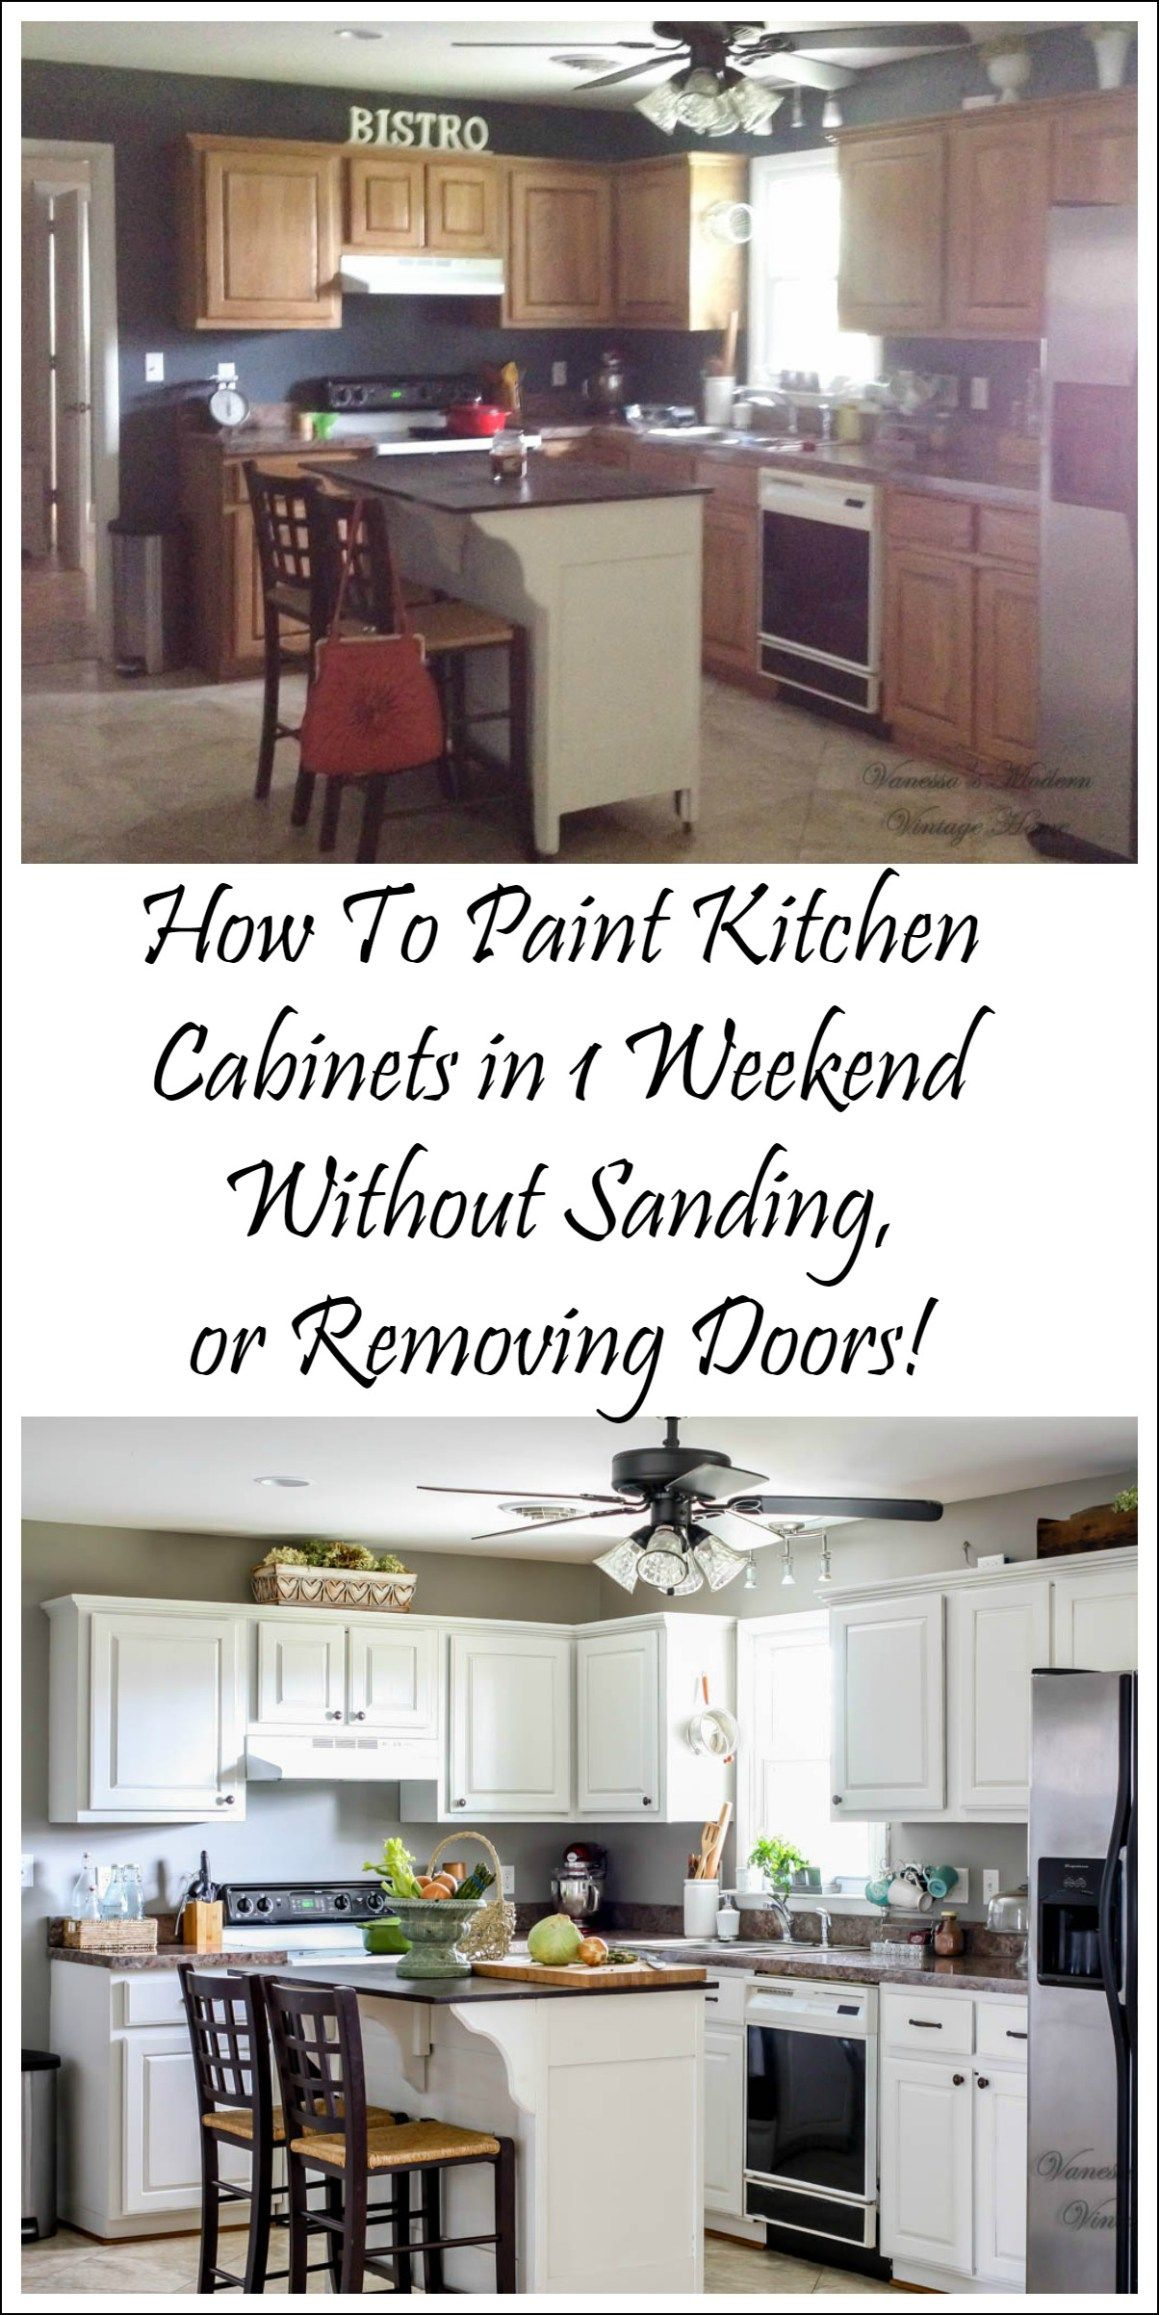 How I Painted My Kitchen Cabinets Without Removing The Doors!